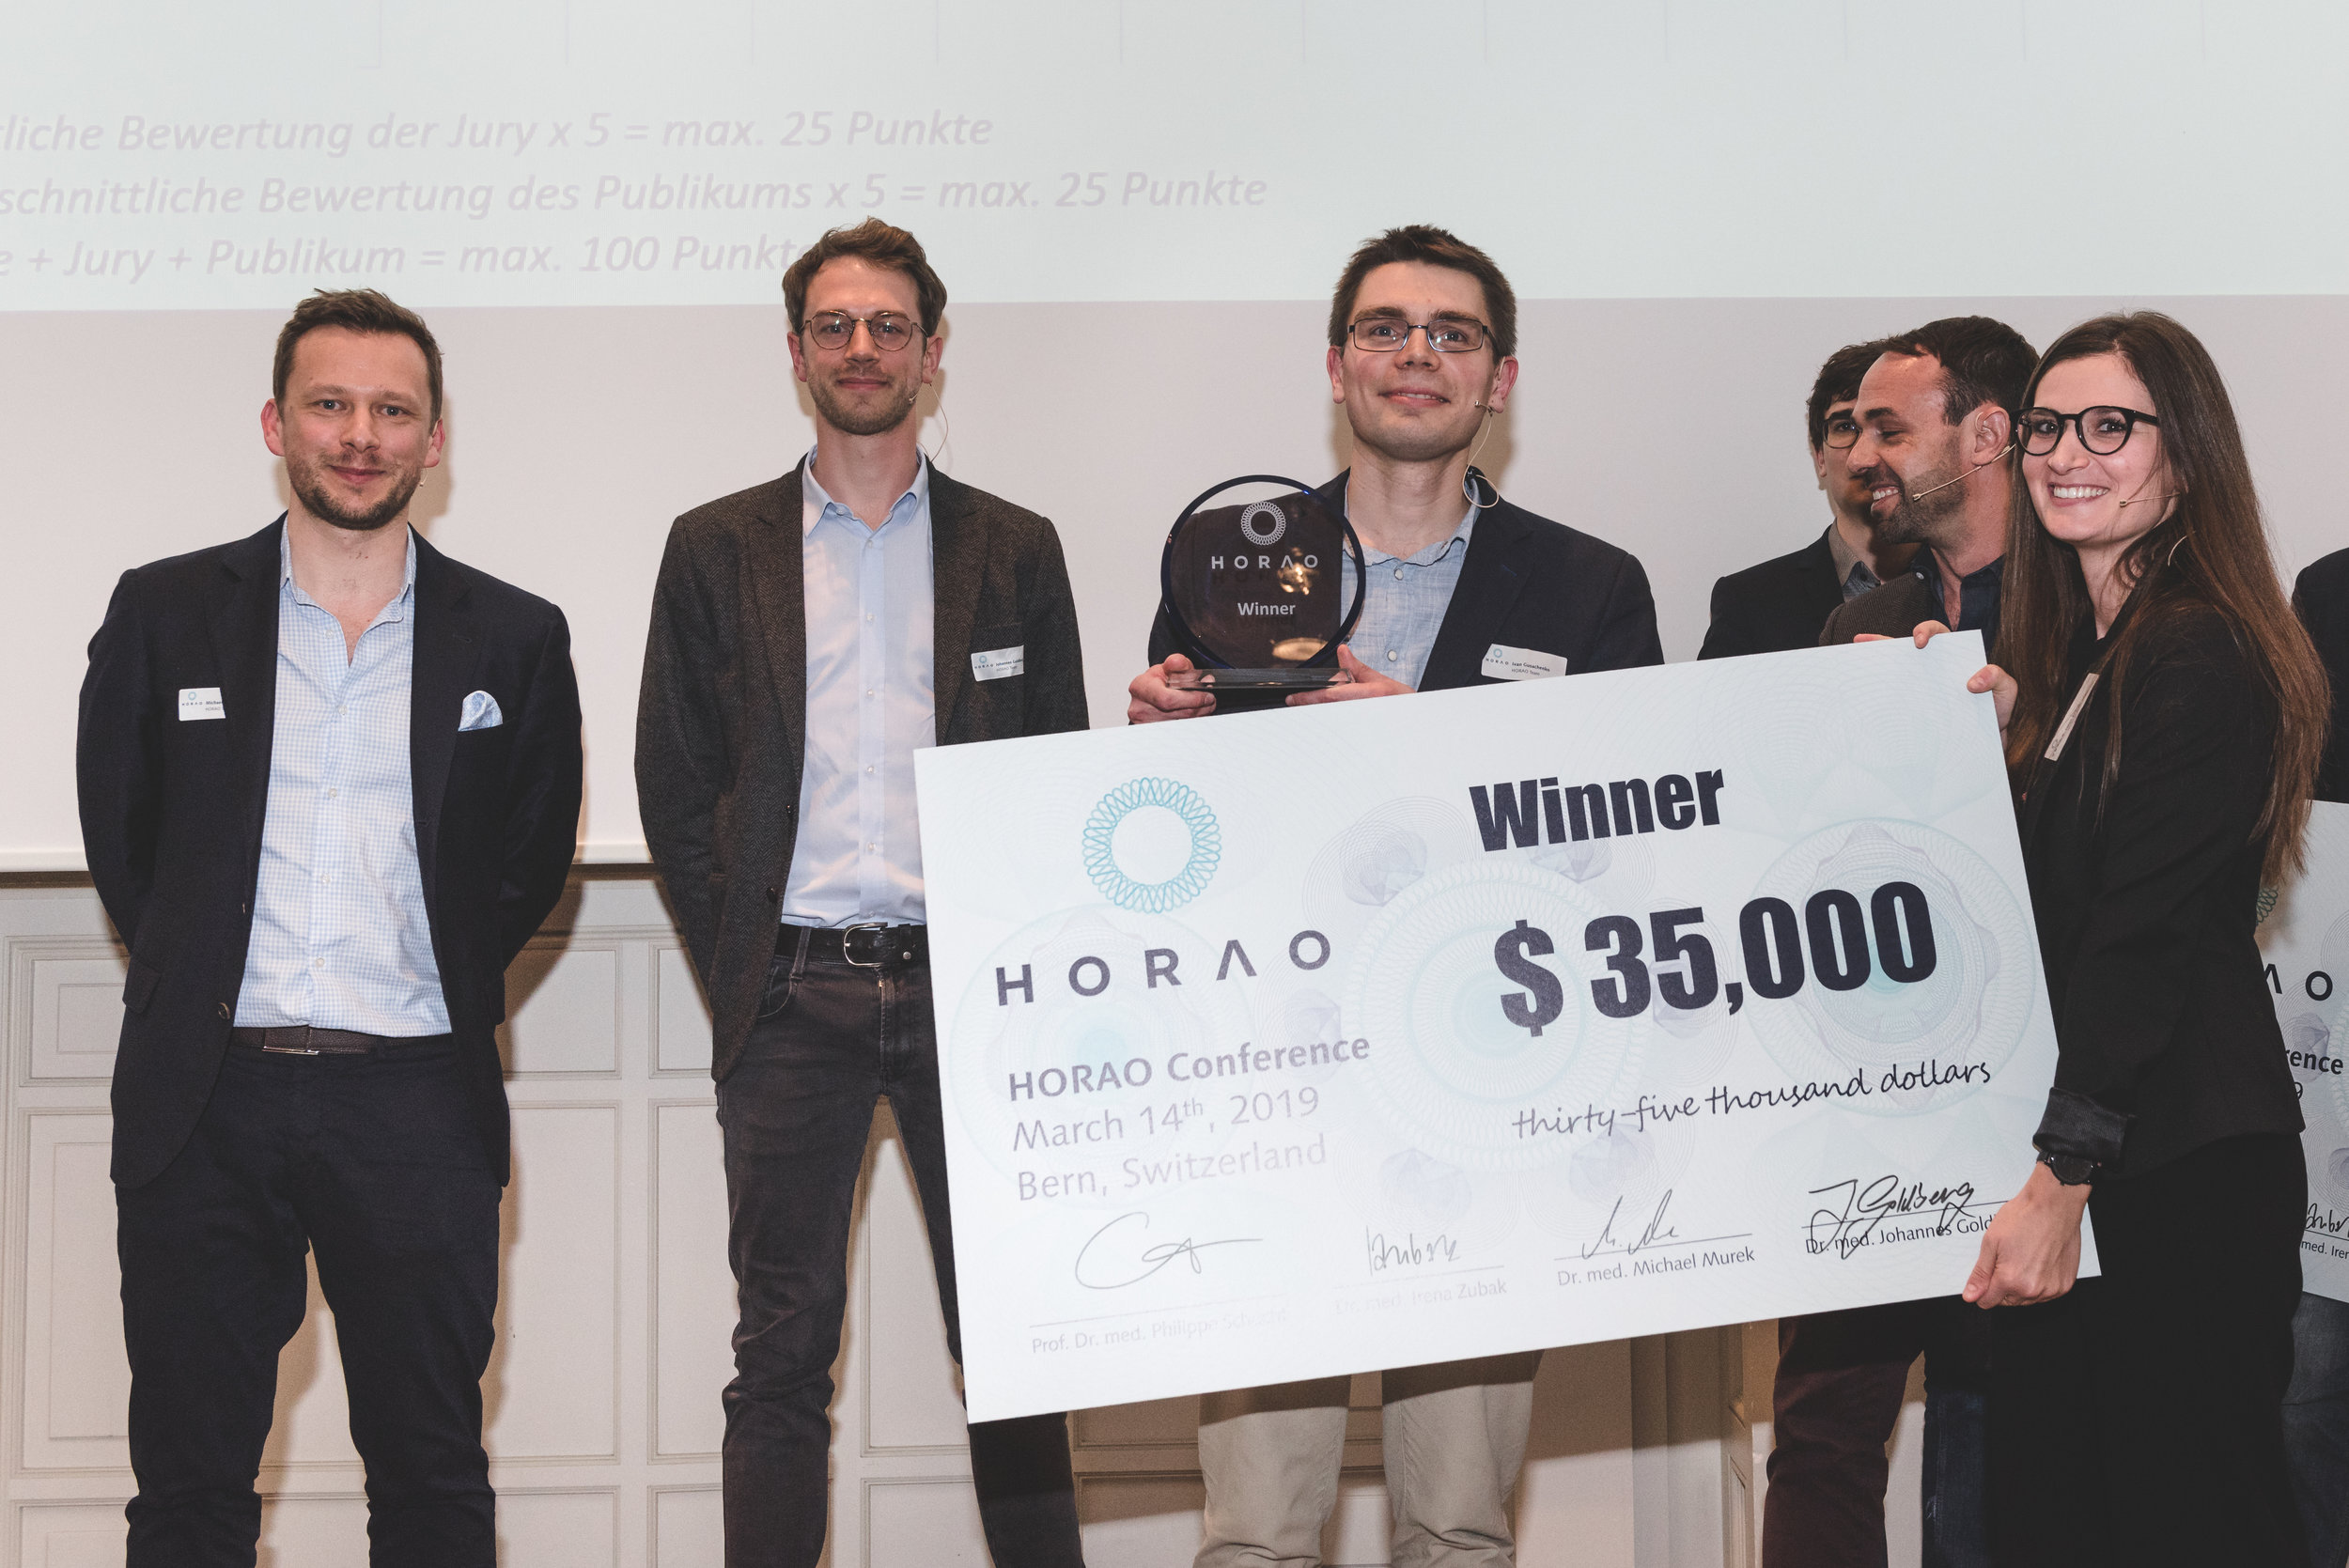 Ivan Gusachenko wins at the scientific HORAO Conference at the University of Bern